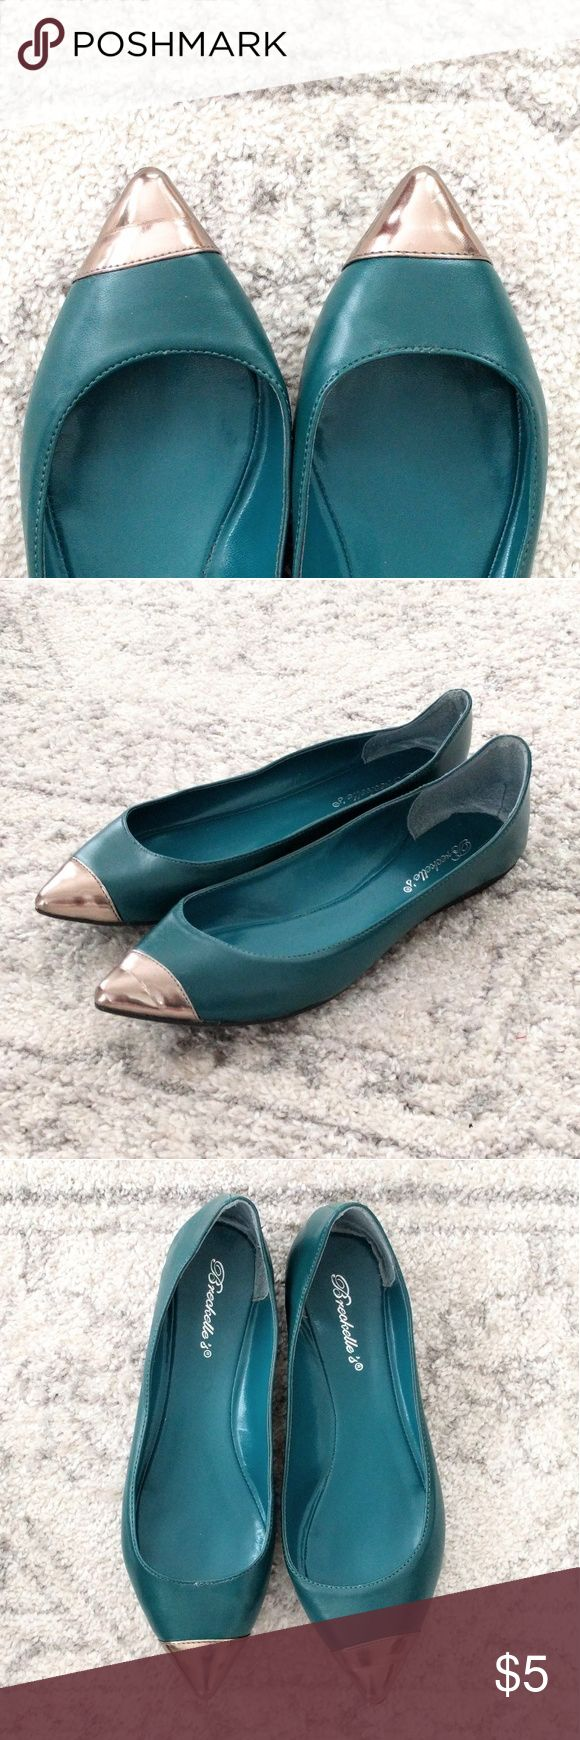 Pretty teal flats Literally worn once to a party for a few hours and in excellent condition!  Comes with box.    Size 8.5.  Great pop of color!  Price is firm because it's so low.  Add to a bundle to save 10% today! Breckelles Shoes Flats & Loafers